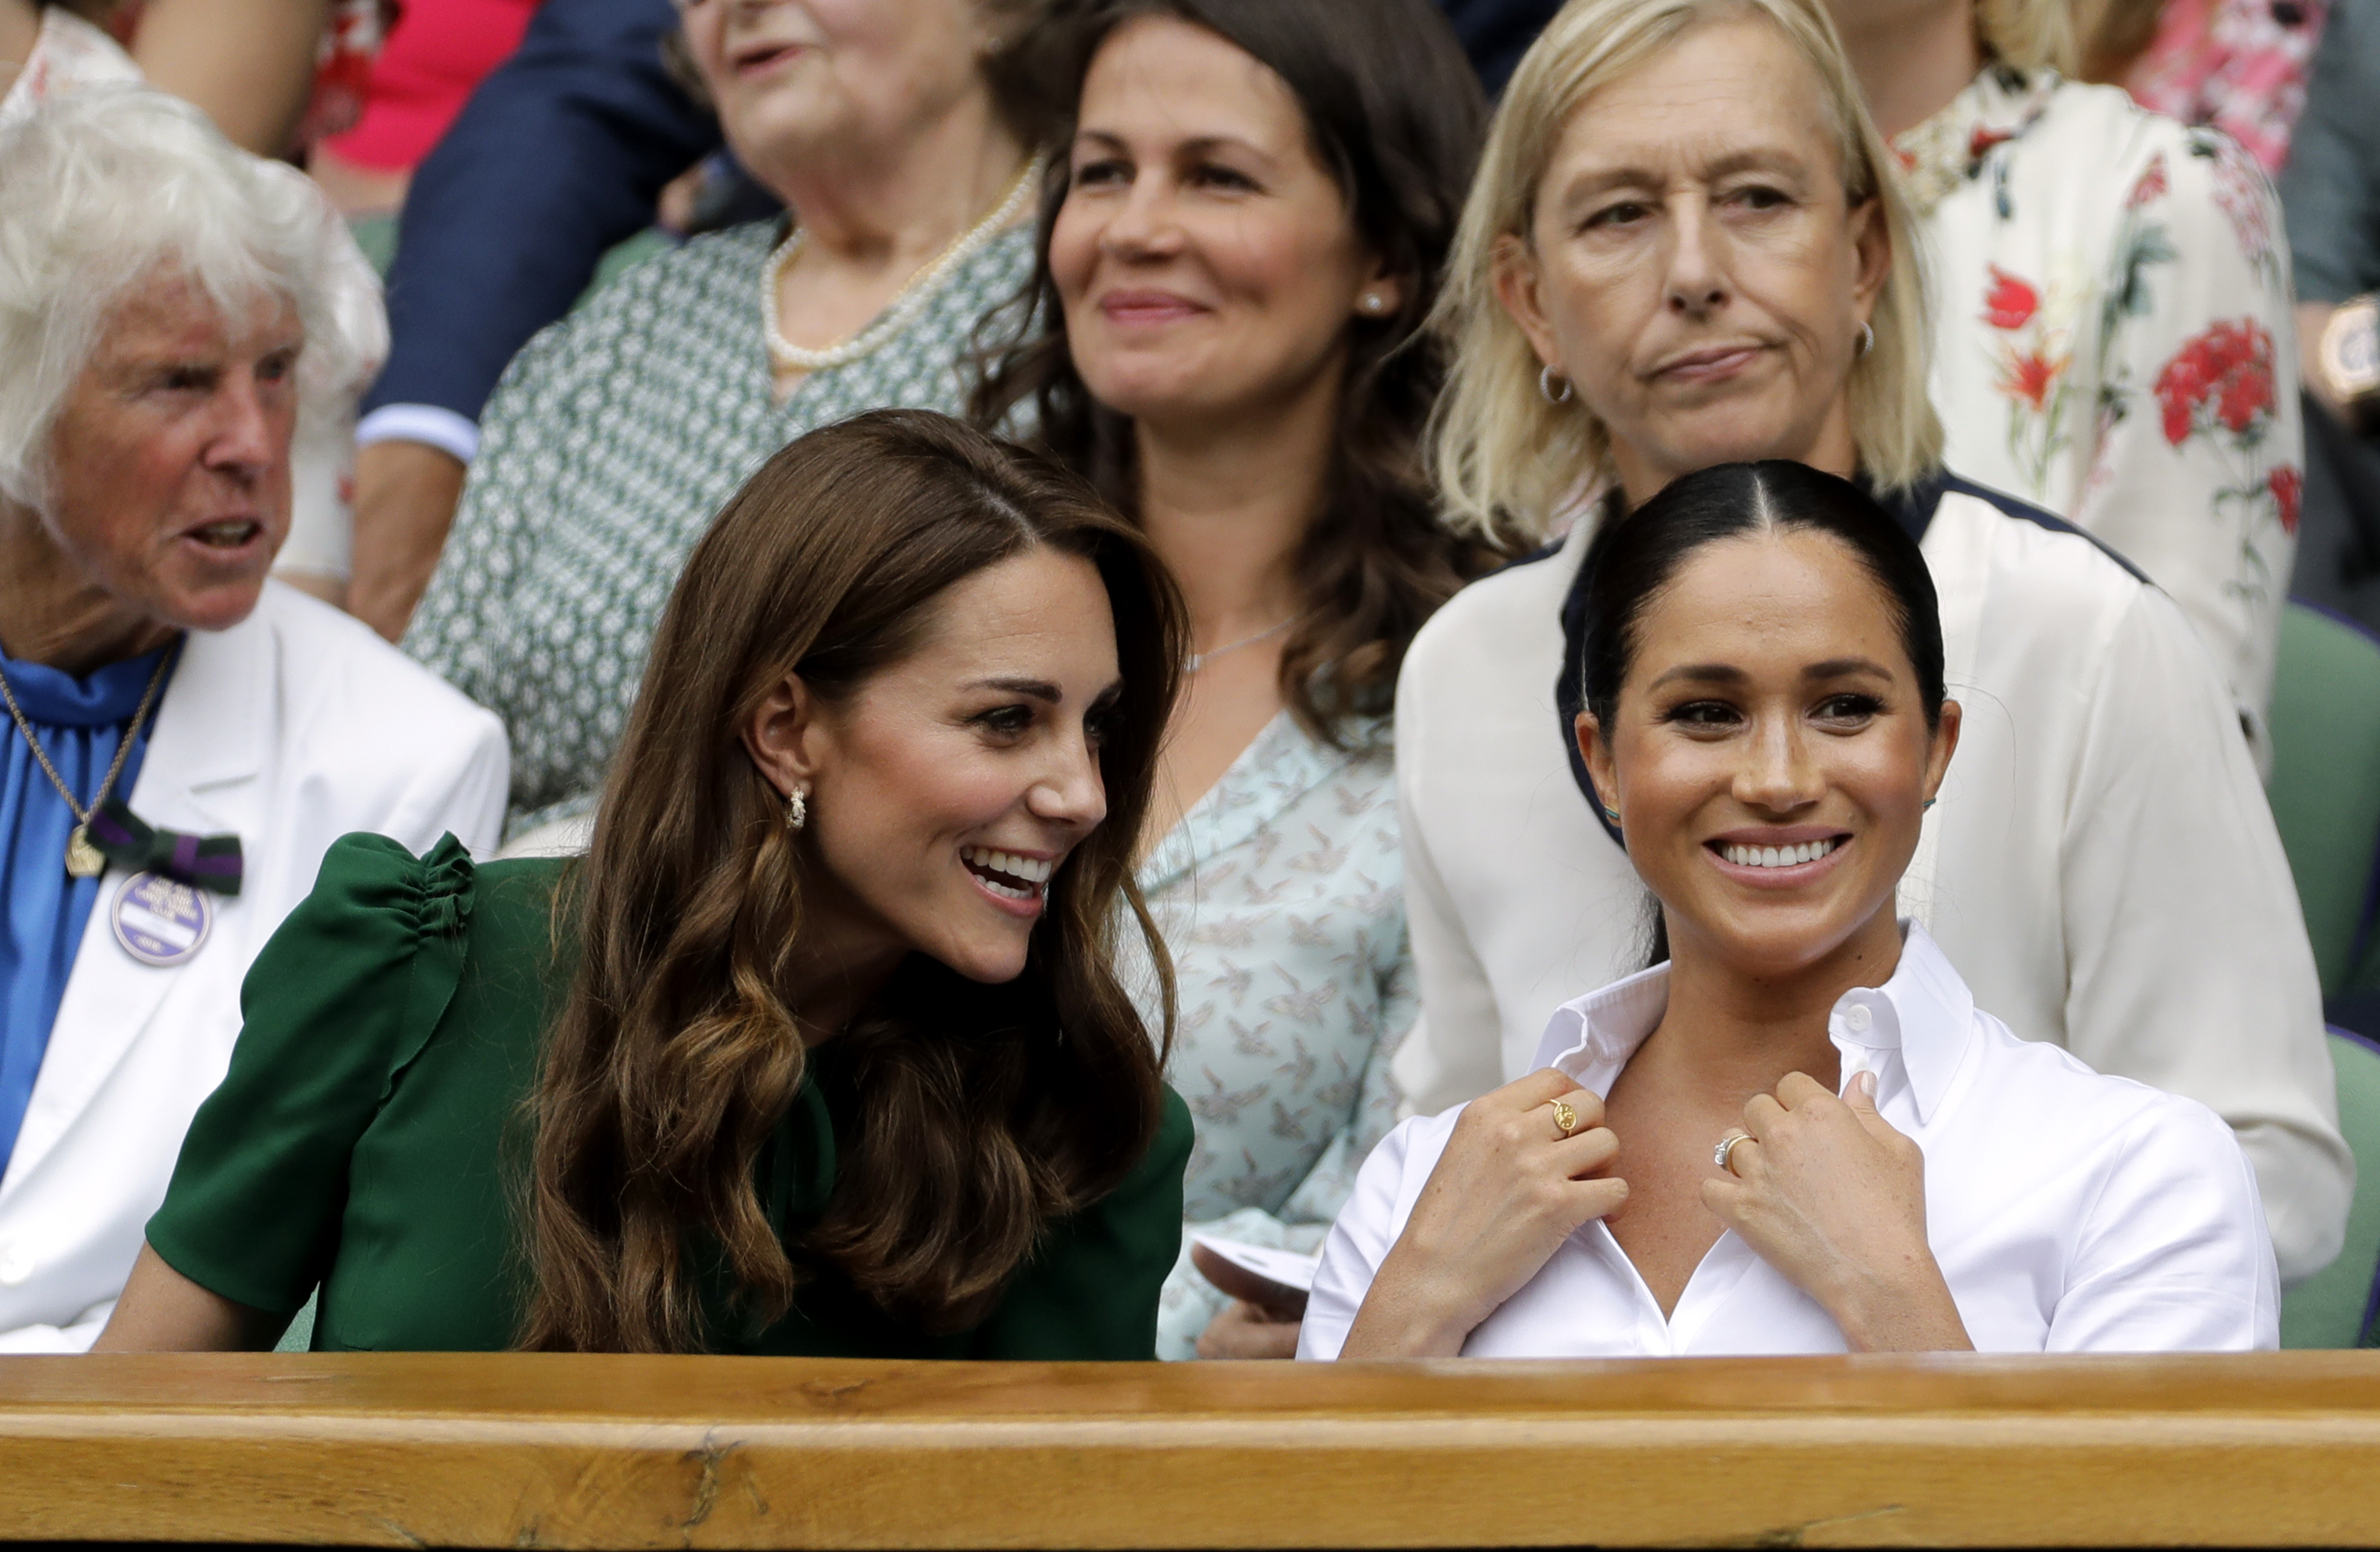 The Duchess of Cambridge and The Duchess of Sussex during the women's singles final on day twelve of the Wimbledon Championships at the All England Lawn Tennis and Croquet Club, Wimbledon.